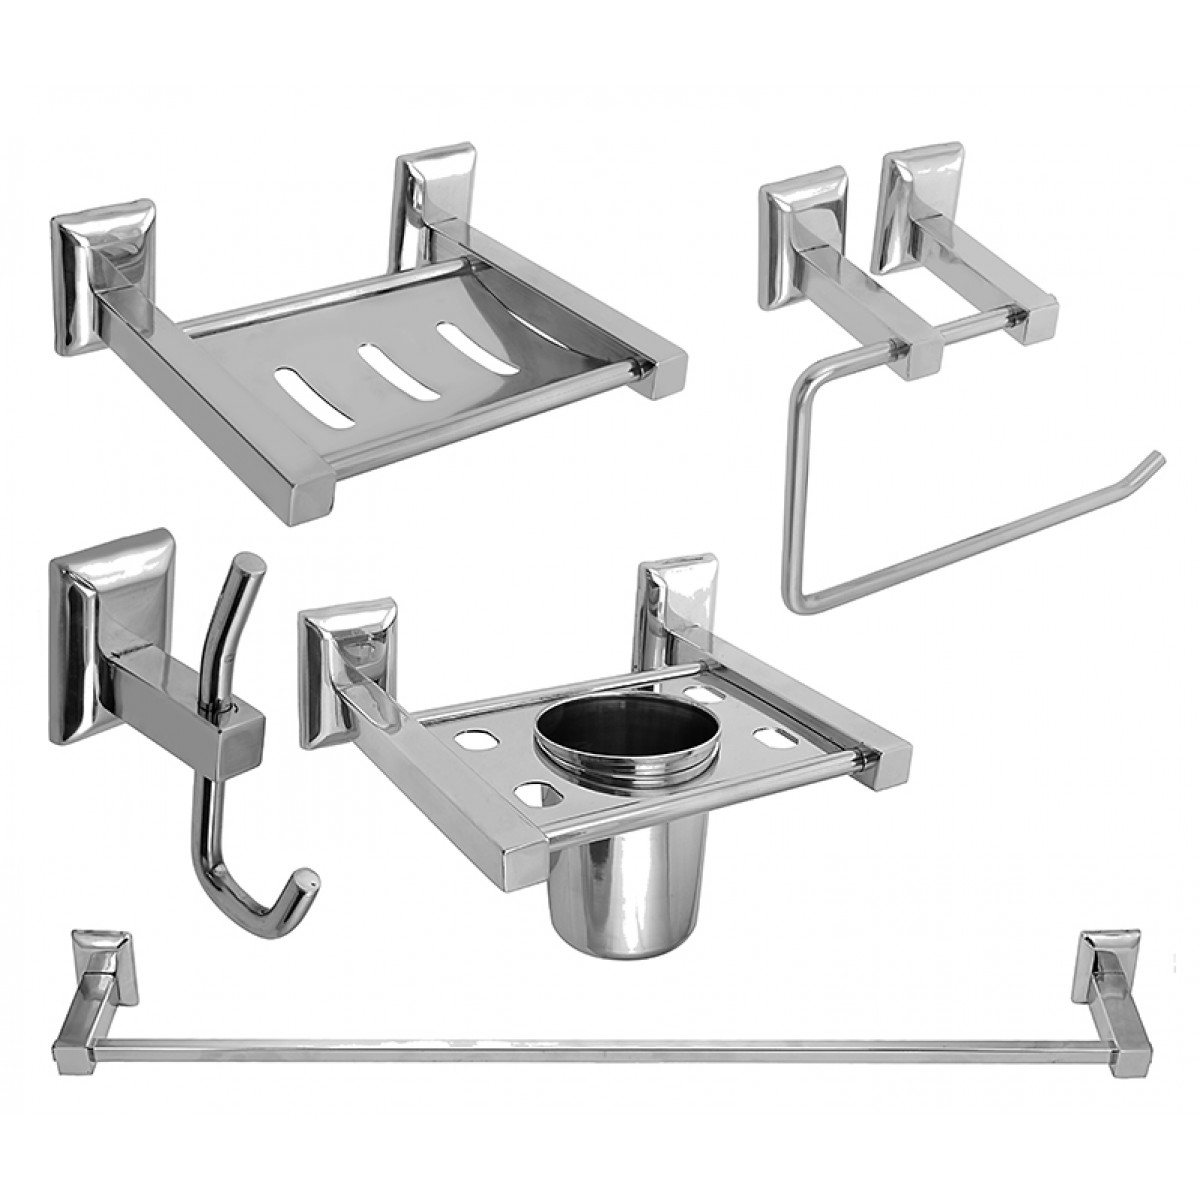 Bathroom fittings set - Klaxon Aquaria Bath Set Bathroom Accessories Set Steel